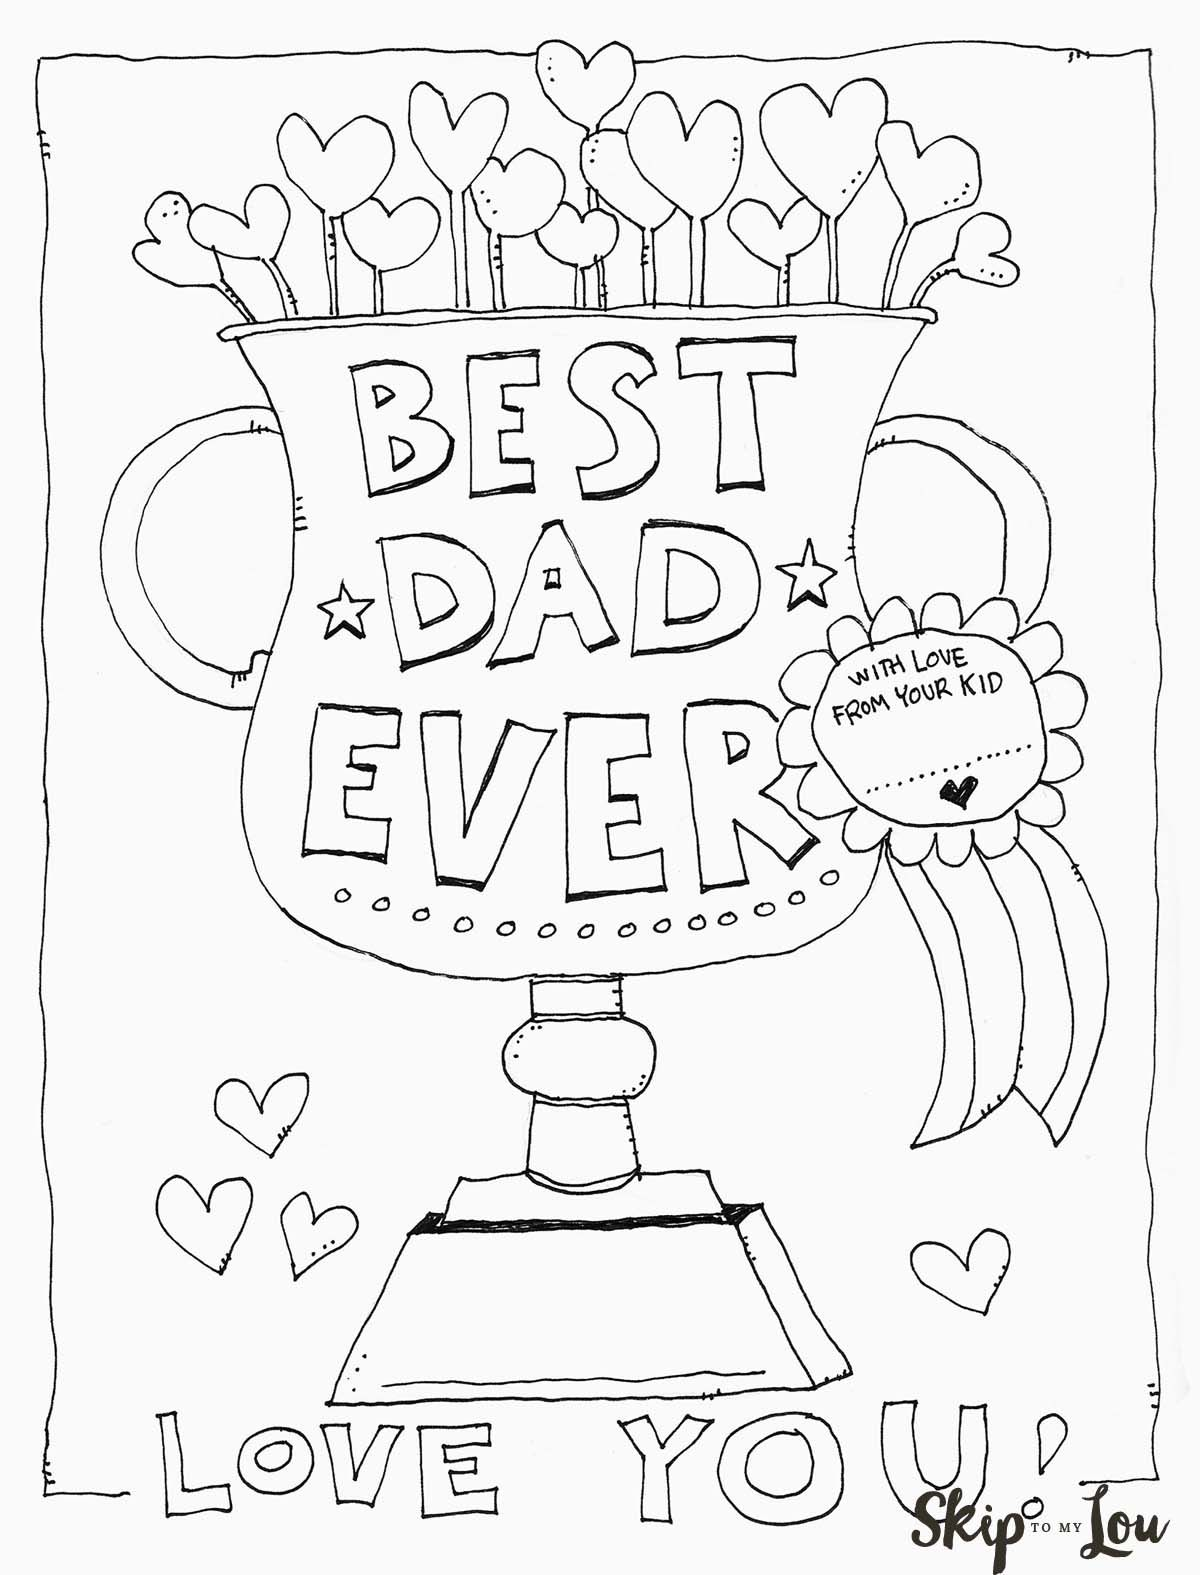 dad coloring pages Dad Coloring Page for the BEST Dad | Father's Day | Fathers day  dad coloring pages